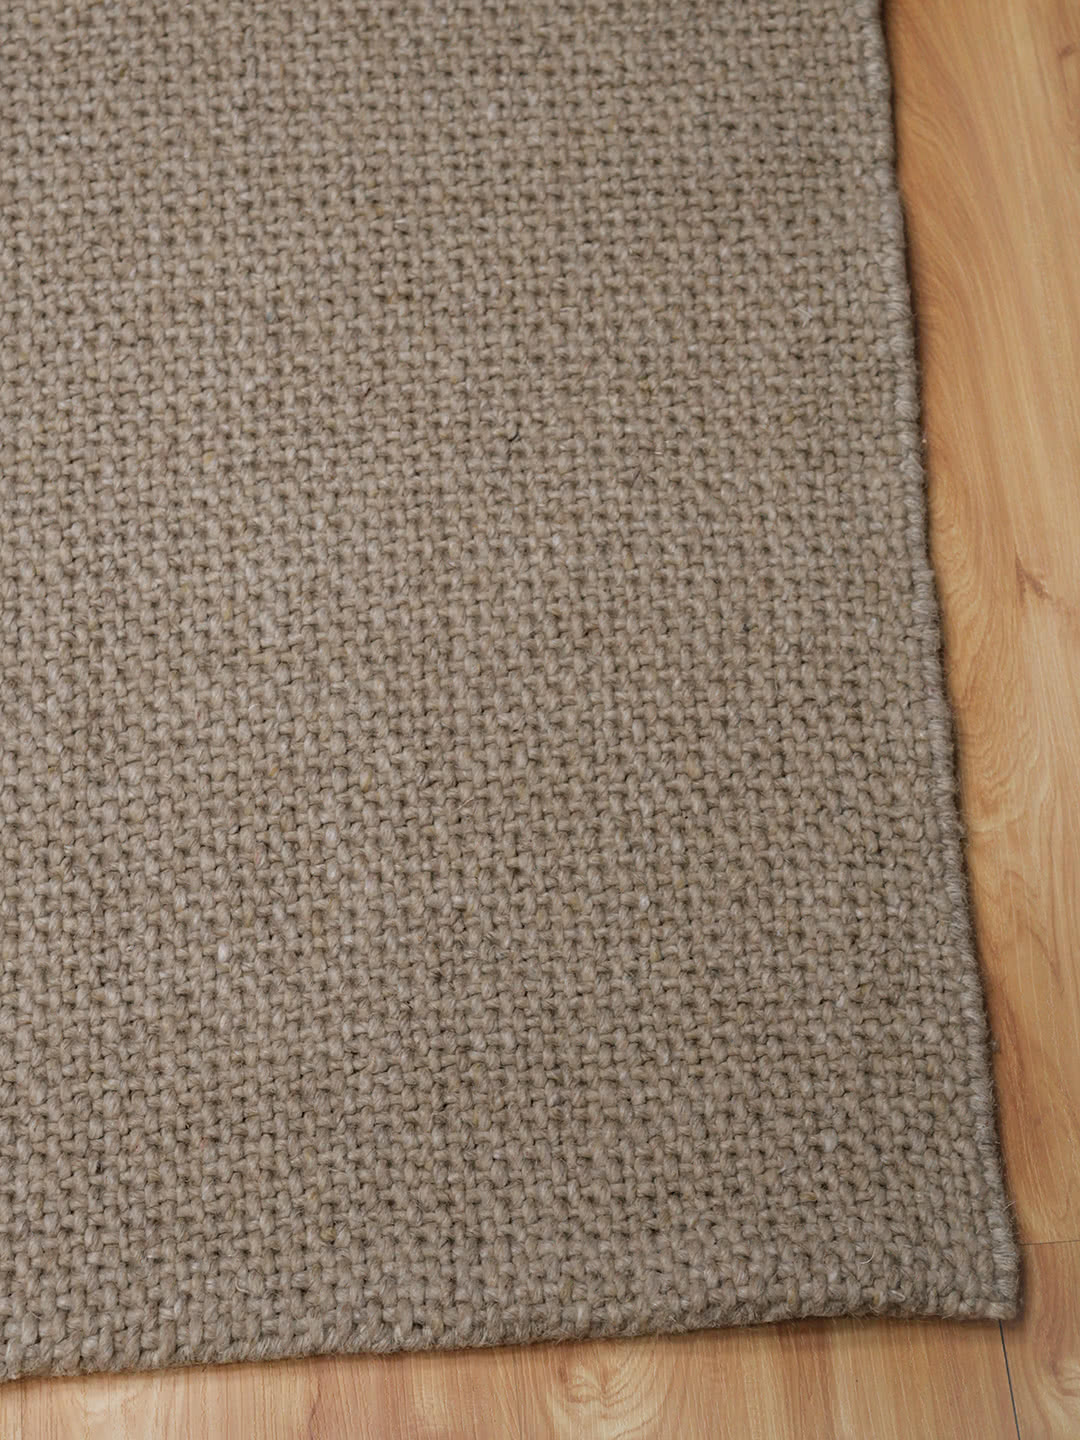 Taupe wool rugs Perth